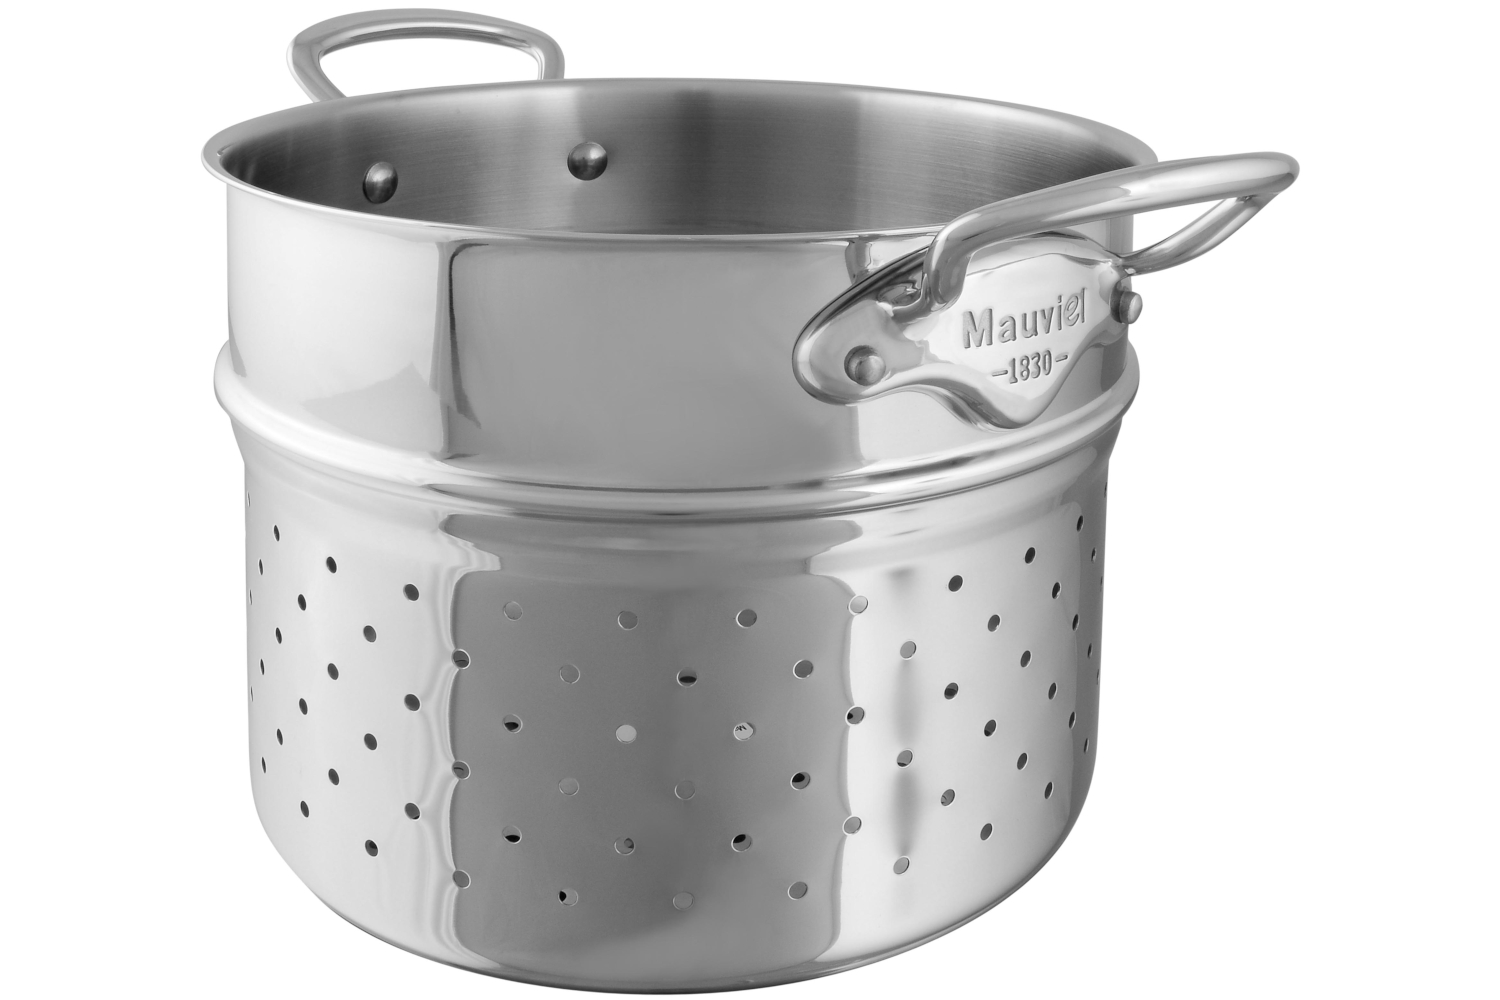 Mauviel M'cook Stainless Steel 9 1/2 inch Pasta Insert